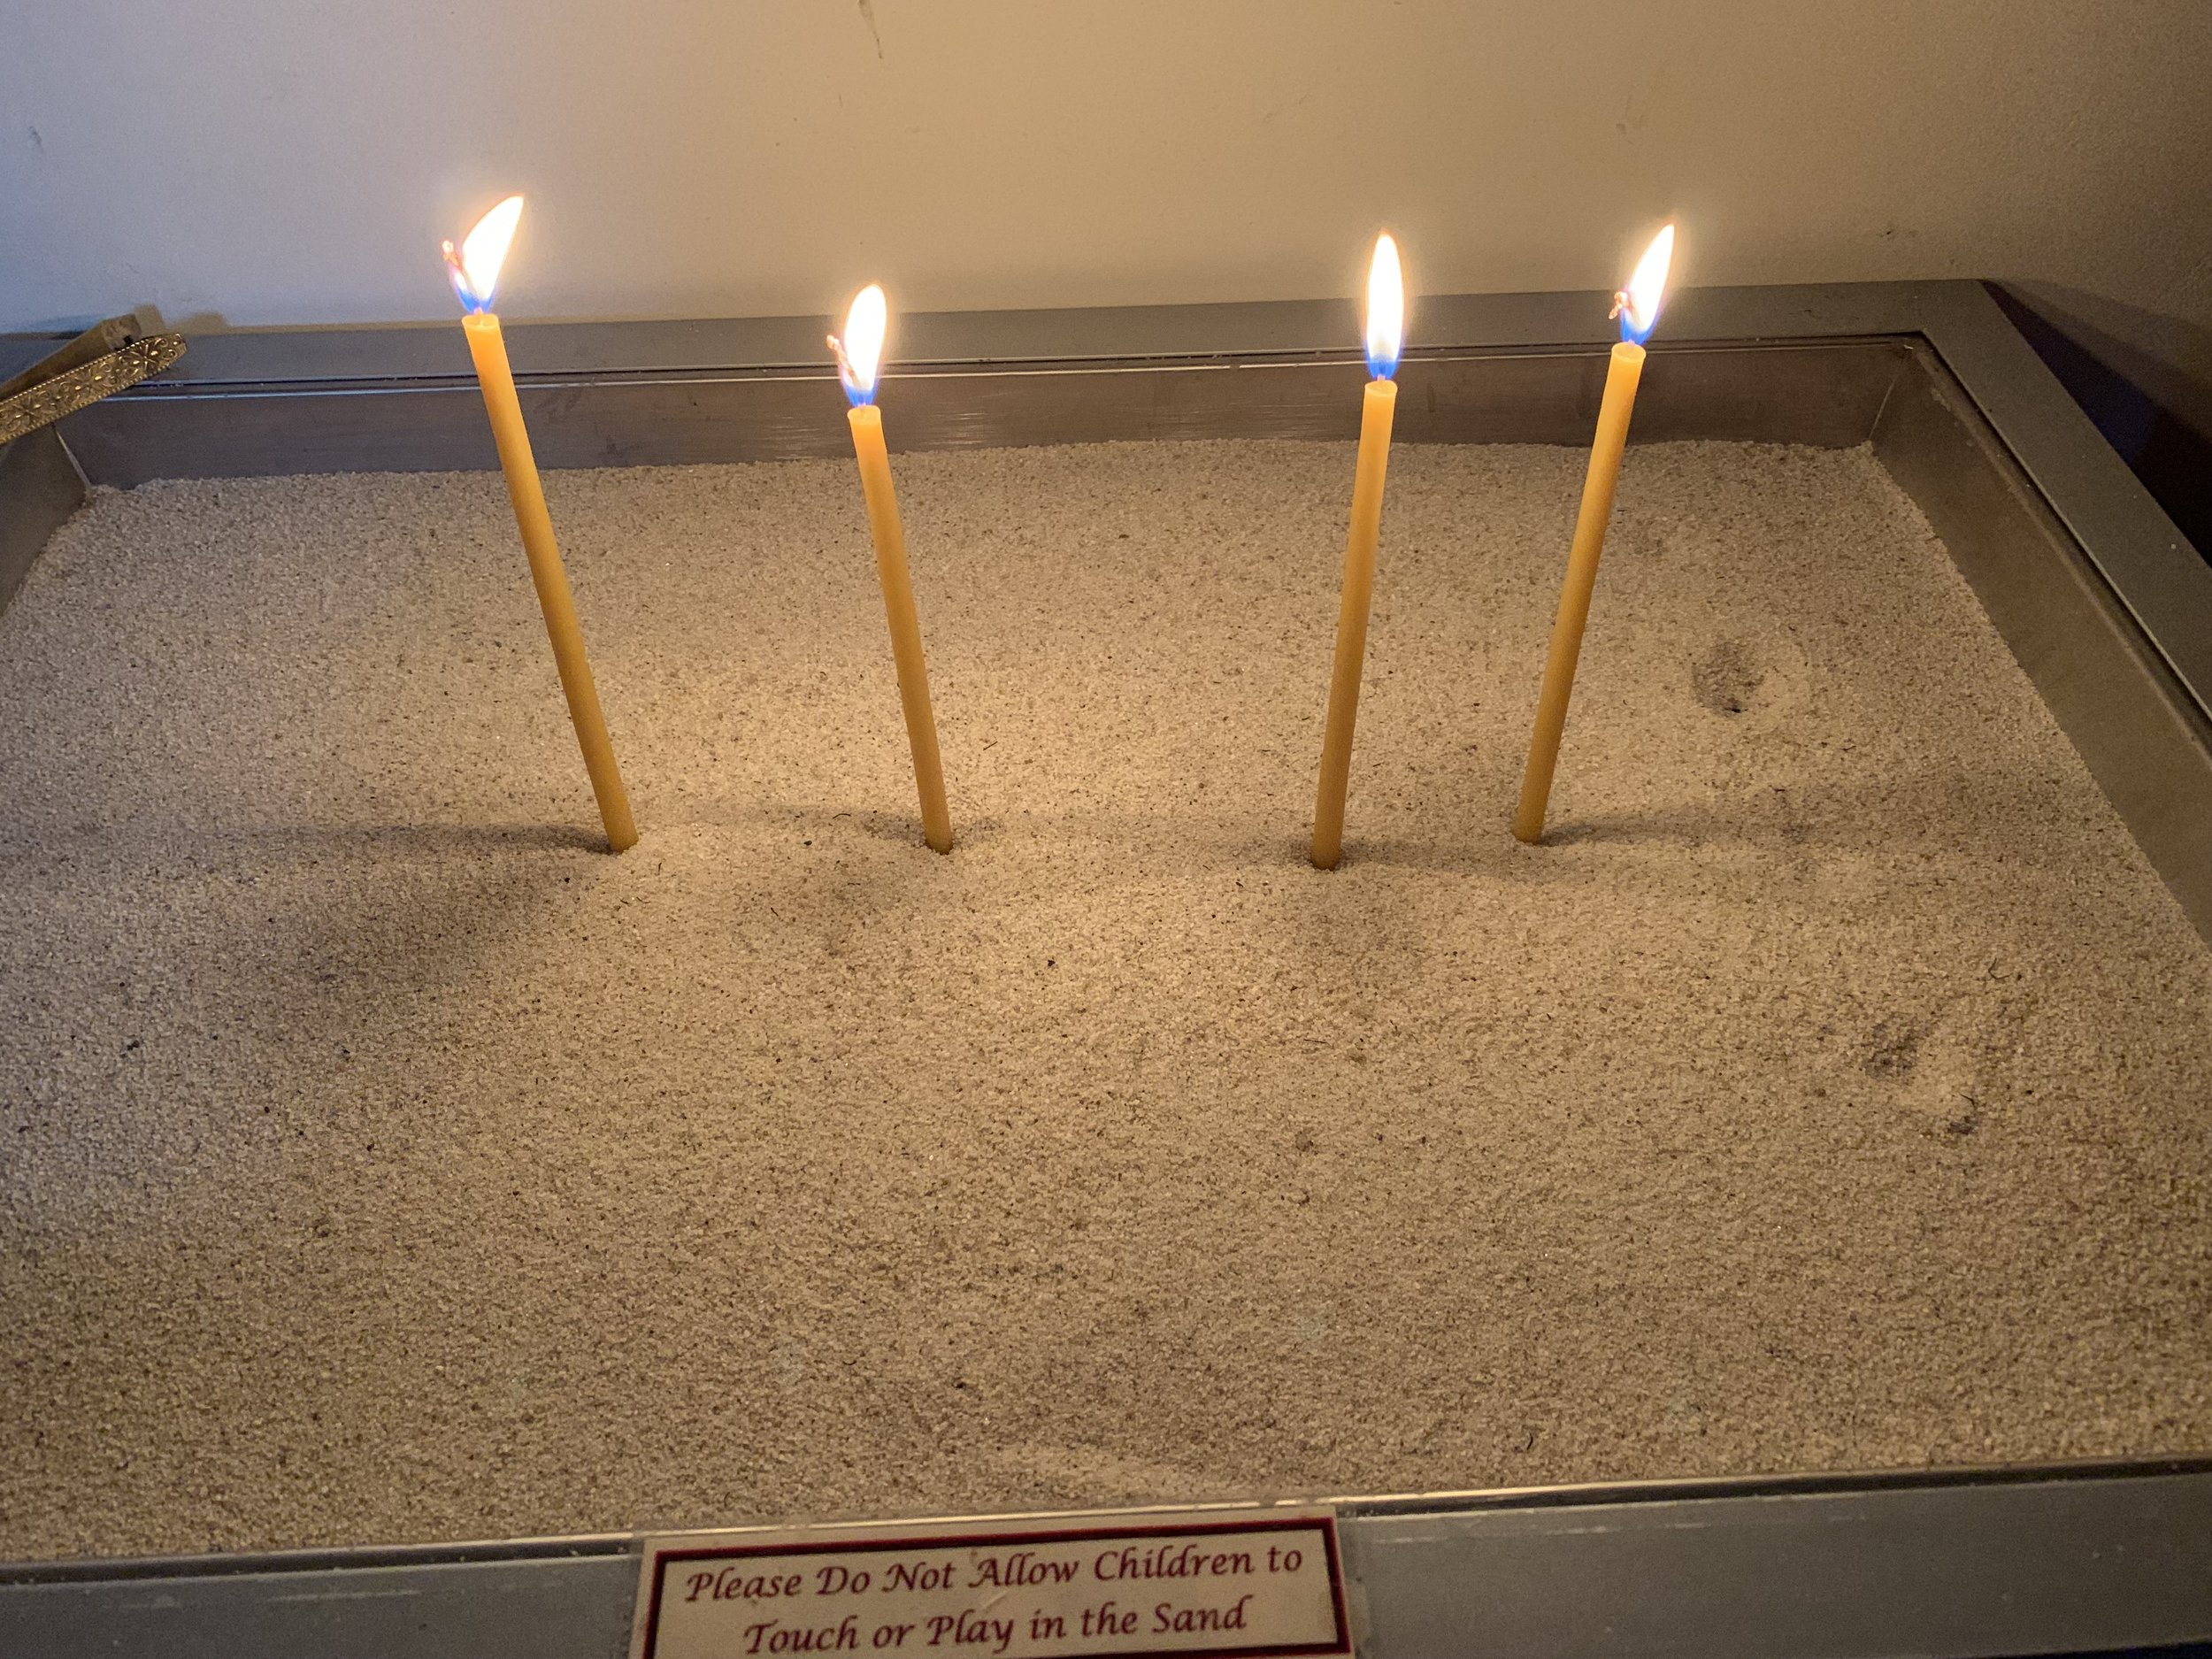 Candles contribute to the ambience inside the church. Photo by Julia Duin.